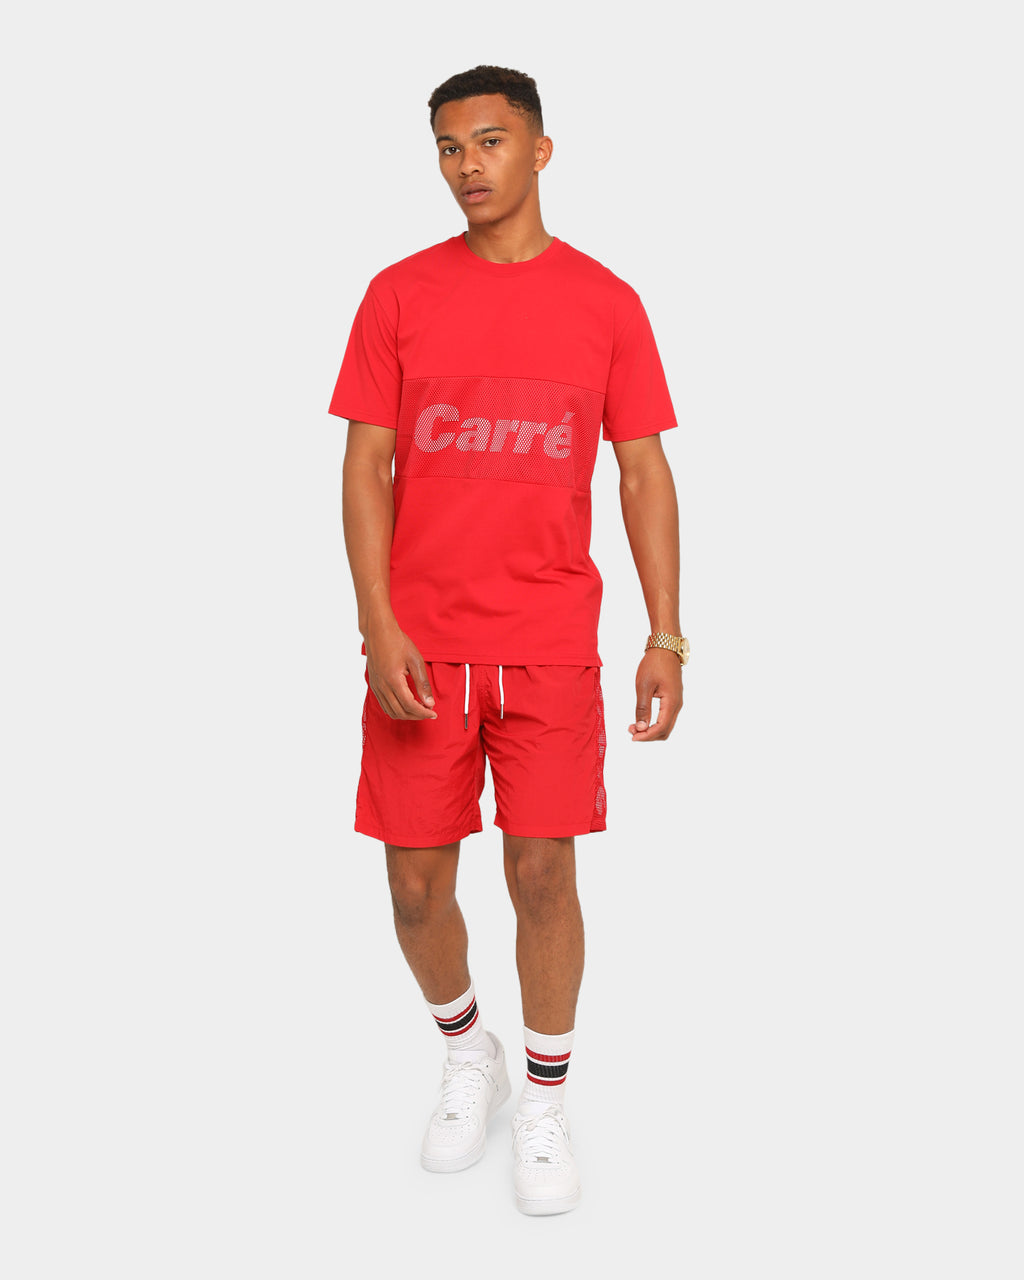 Carré Piste Short Sleeve T-Shirt Red